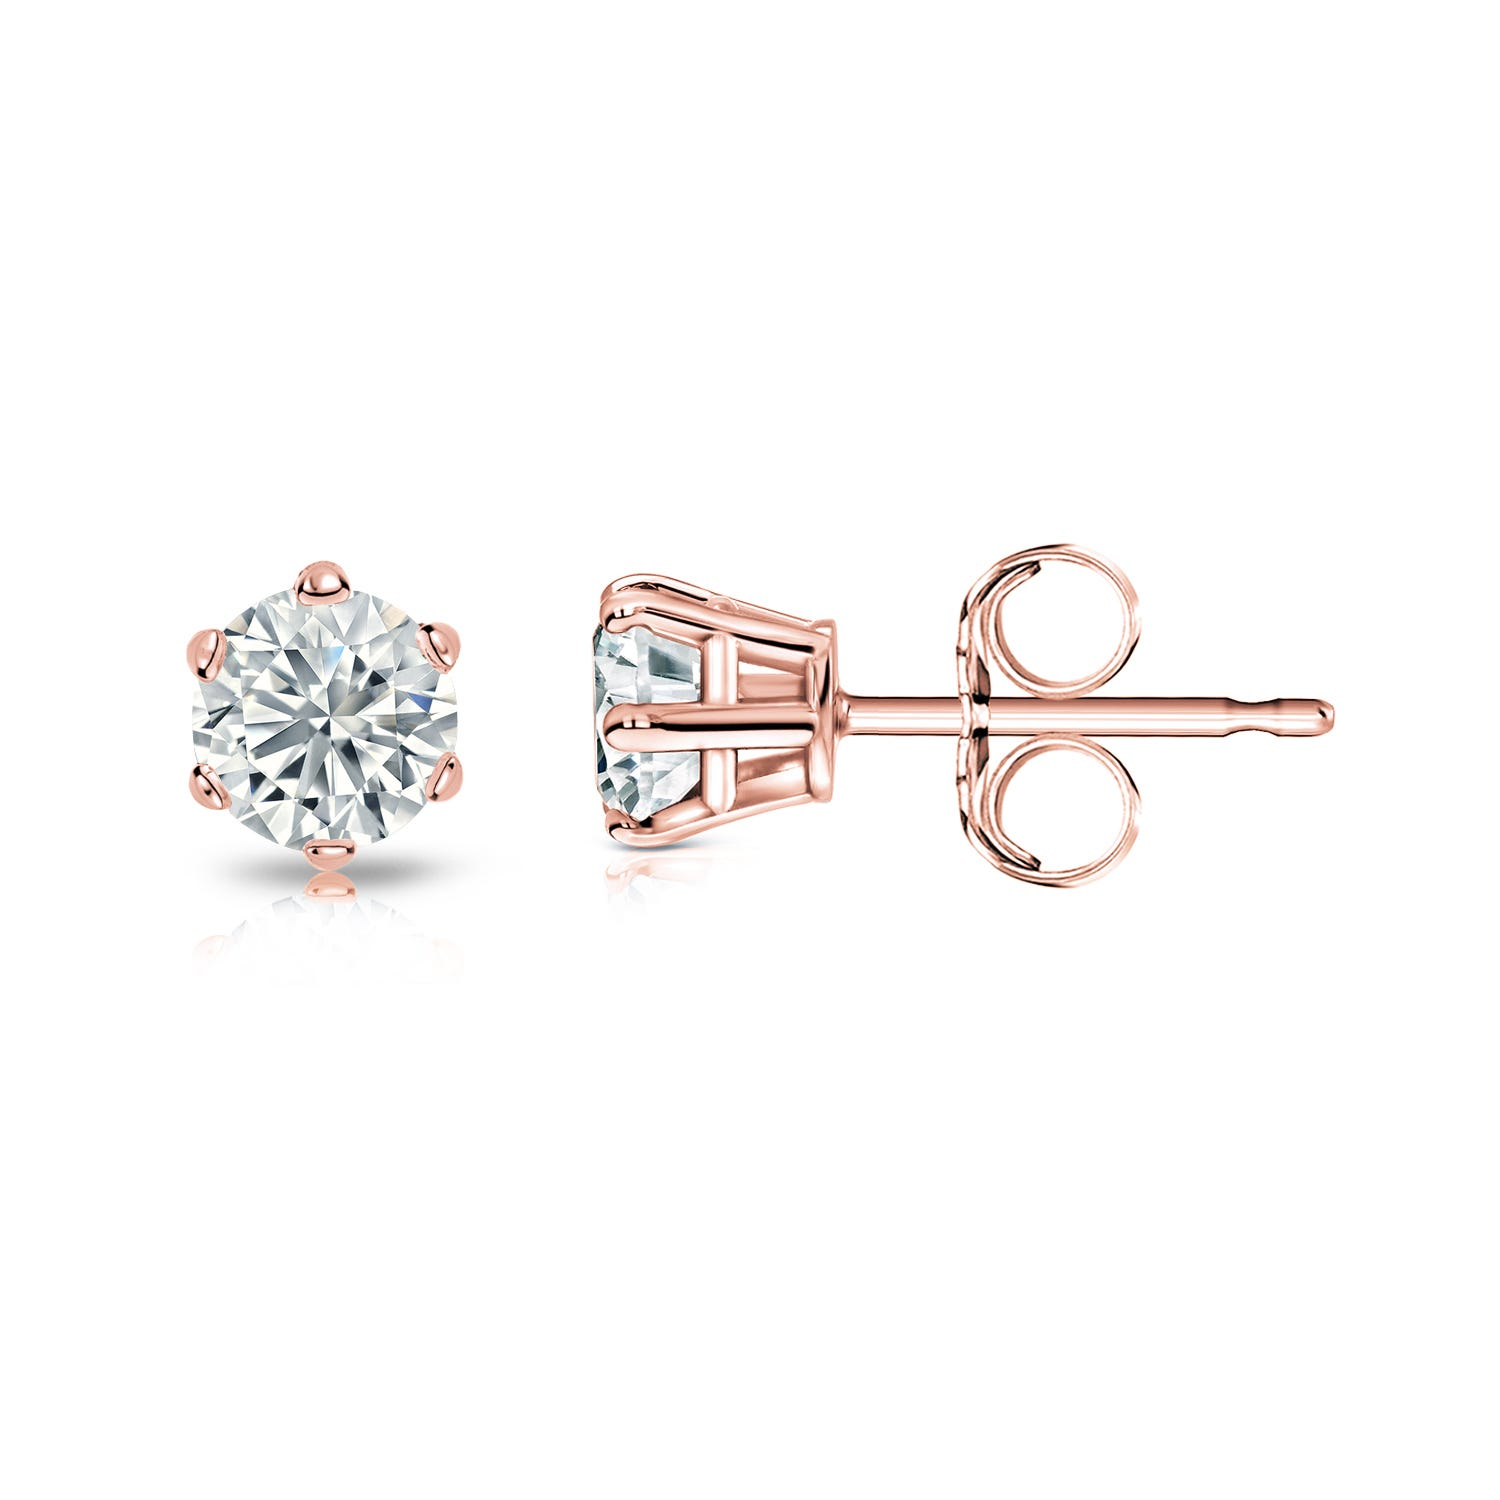 Round Diamond 1/7ctw. (IJ-I2) Solitaire Stud 6-Prong Earrings in 14K Rose Gold